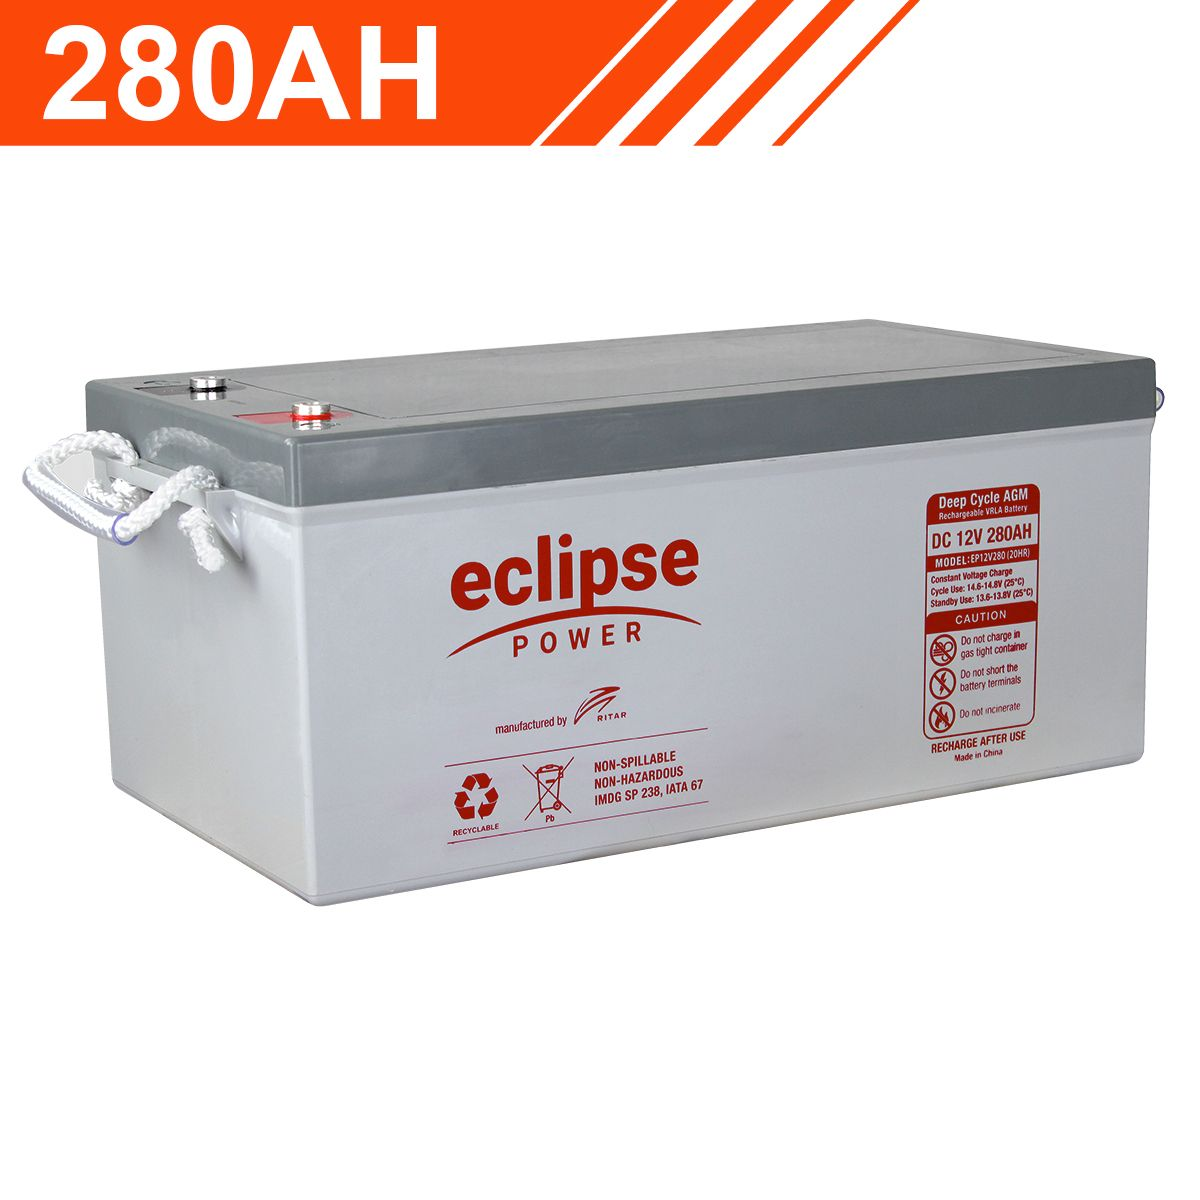 280ah 12v Eclipse Agm Deep Cycle Battery Solar Eclipse Facts Camper Parts Deep